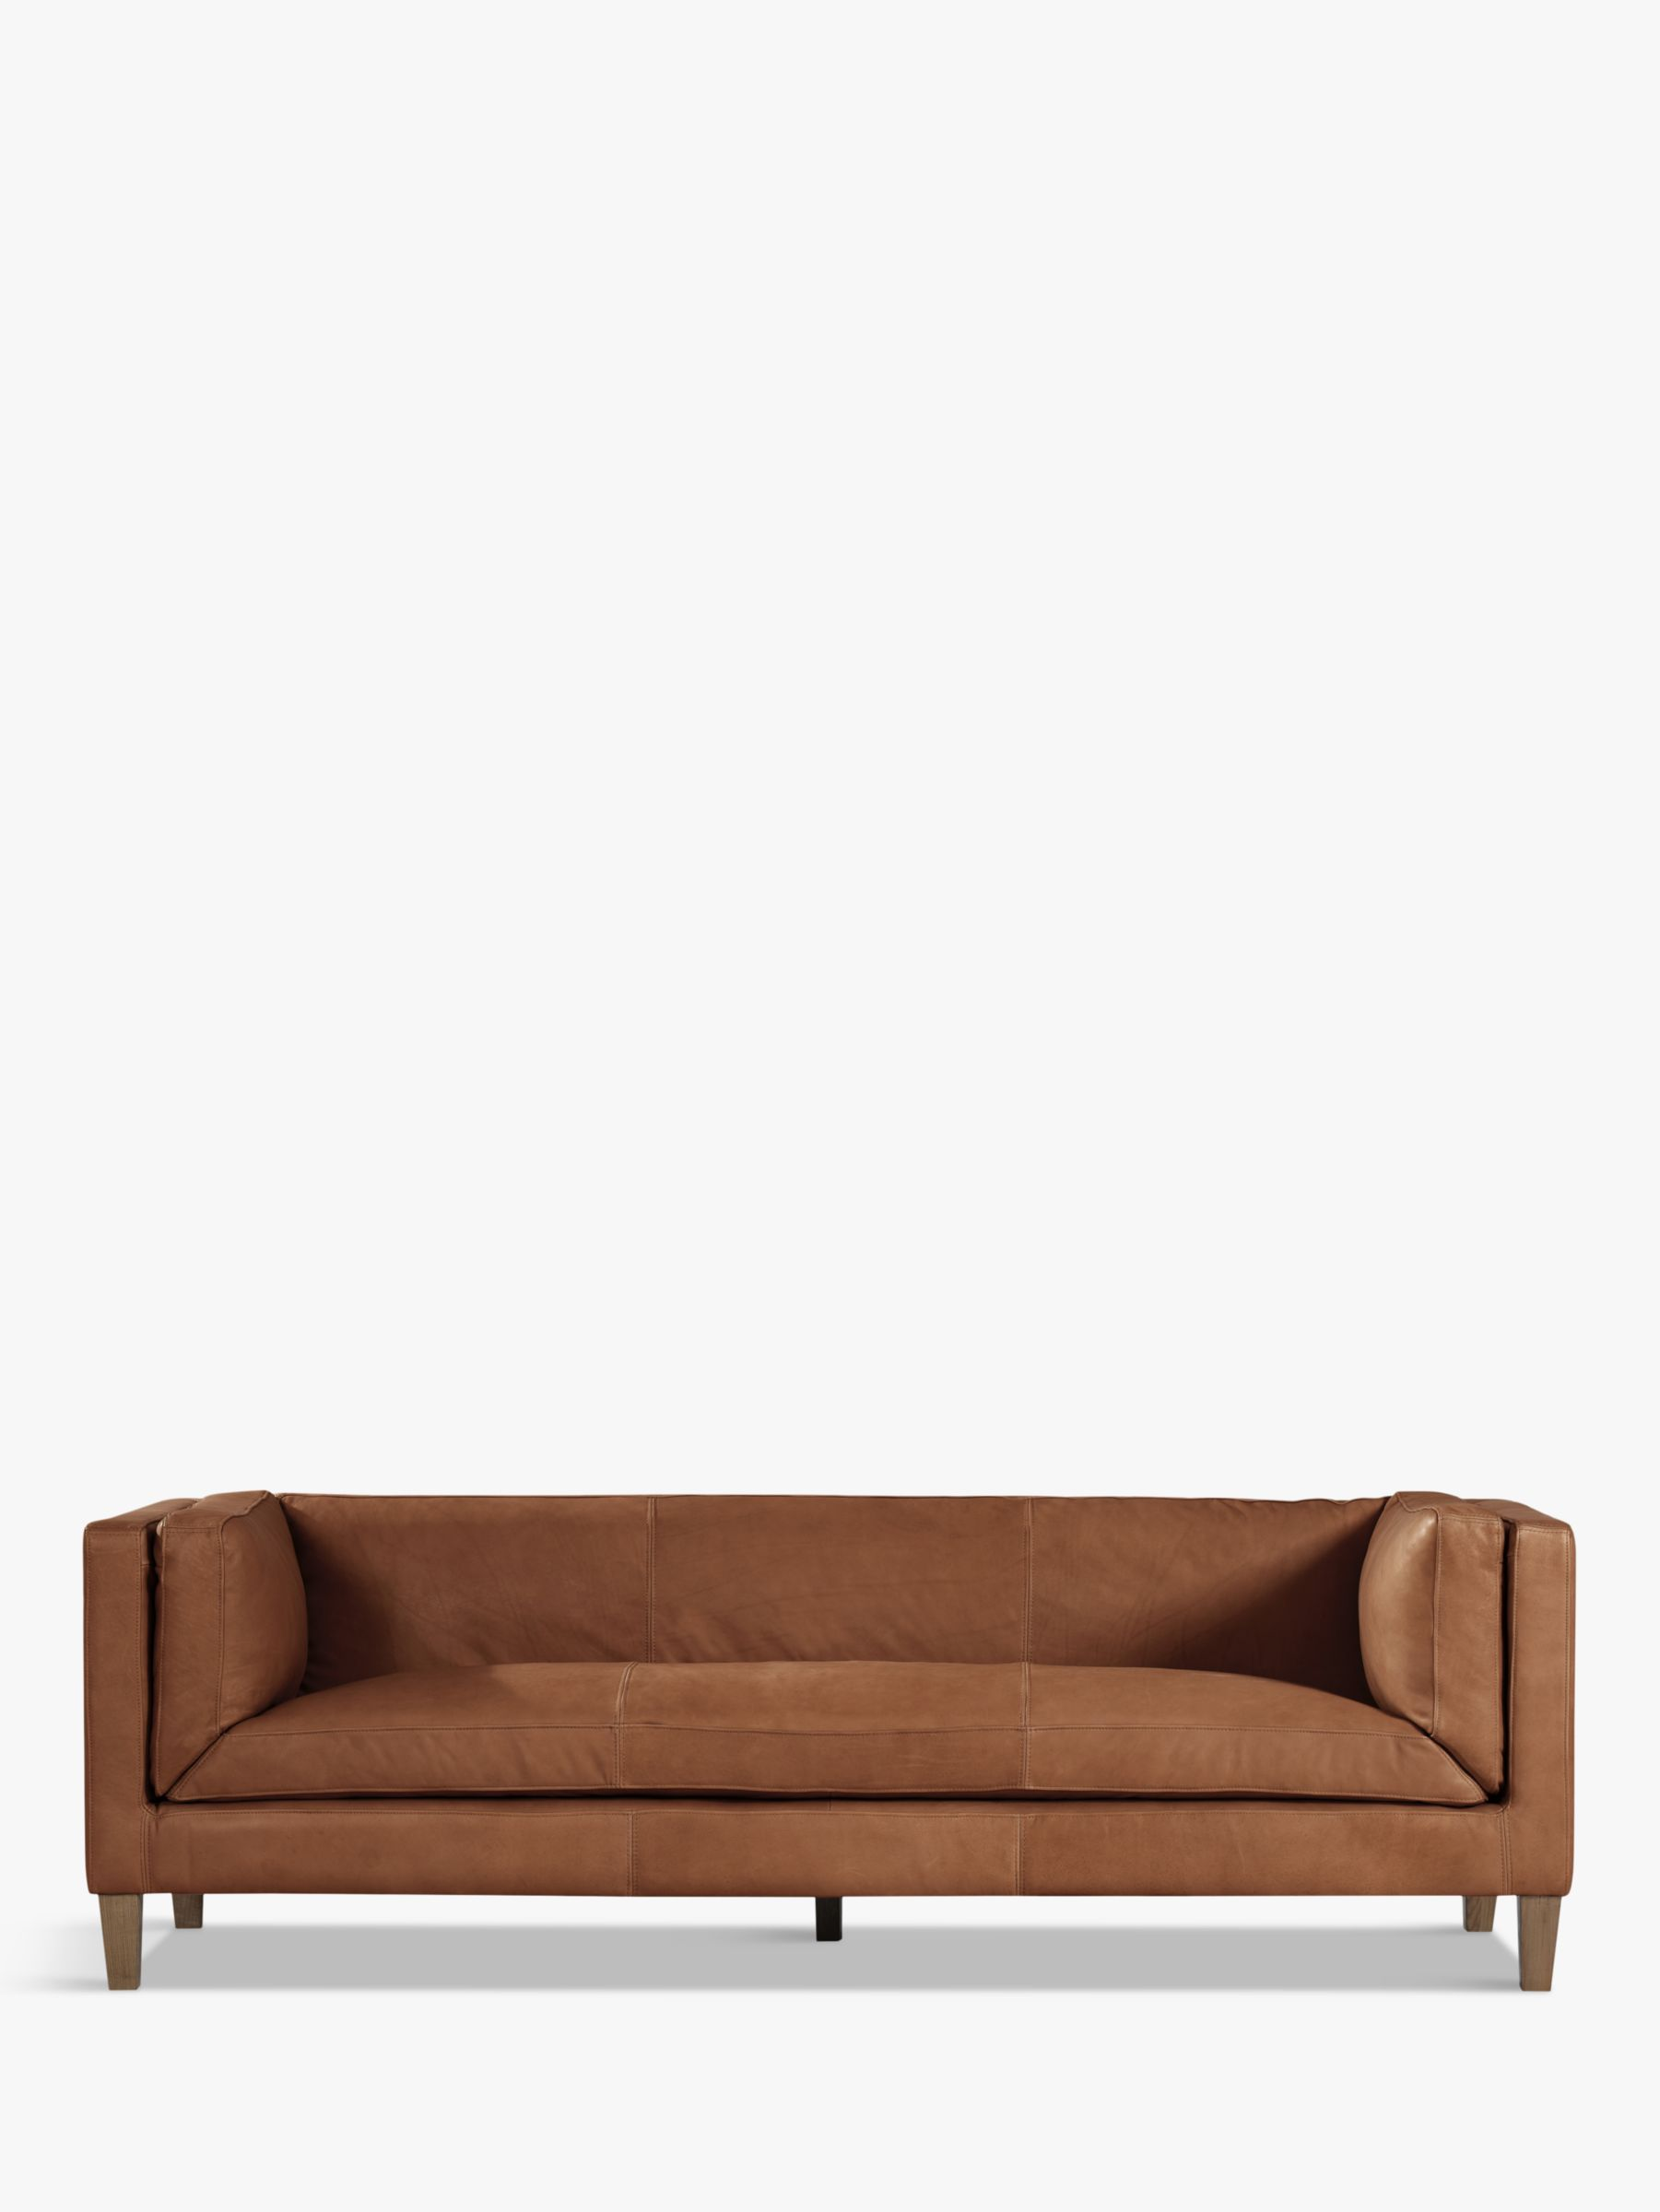 Halo Halo Spencer Large 3 Seater Leather Sofa, Natural Washed Camel